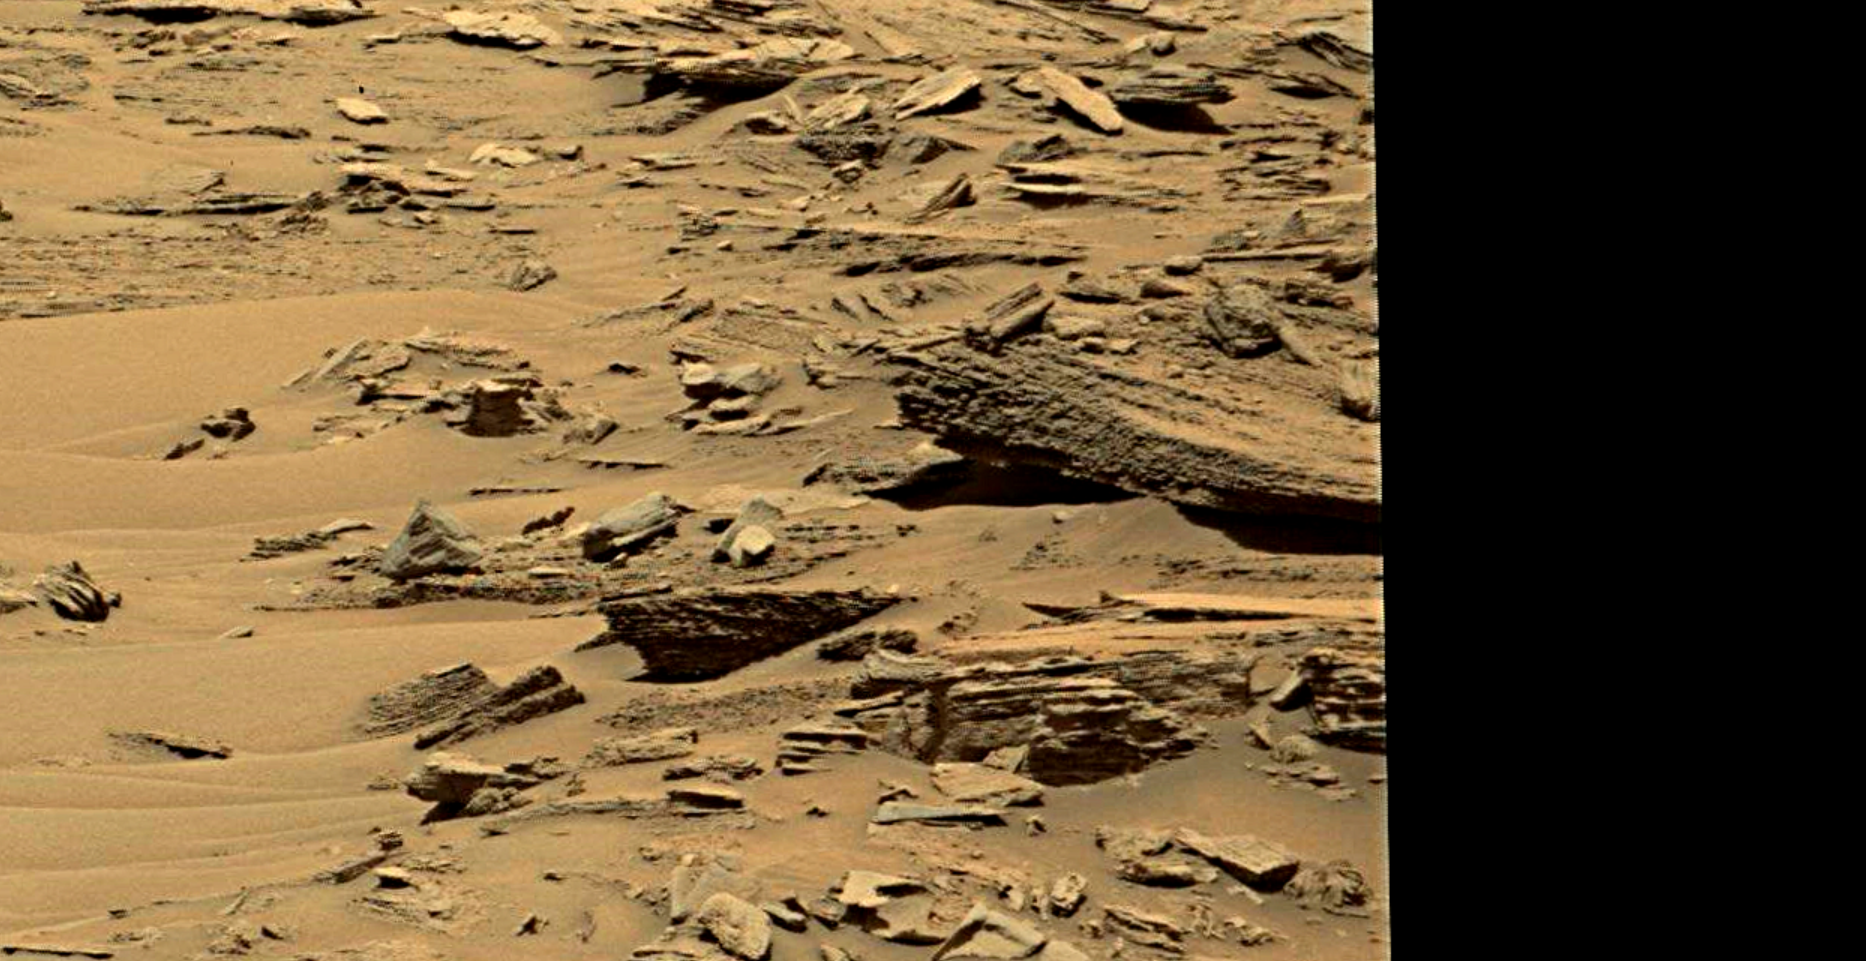 mars sol 1353 anomaly-artifacts 6 was life on mars